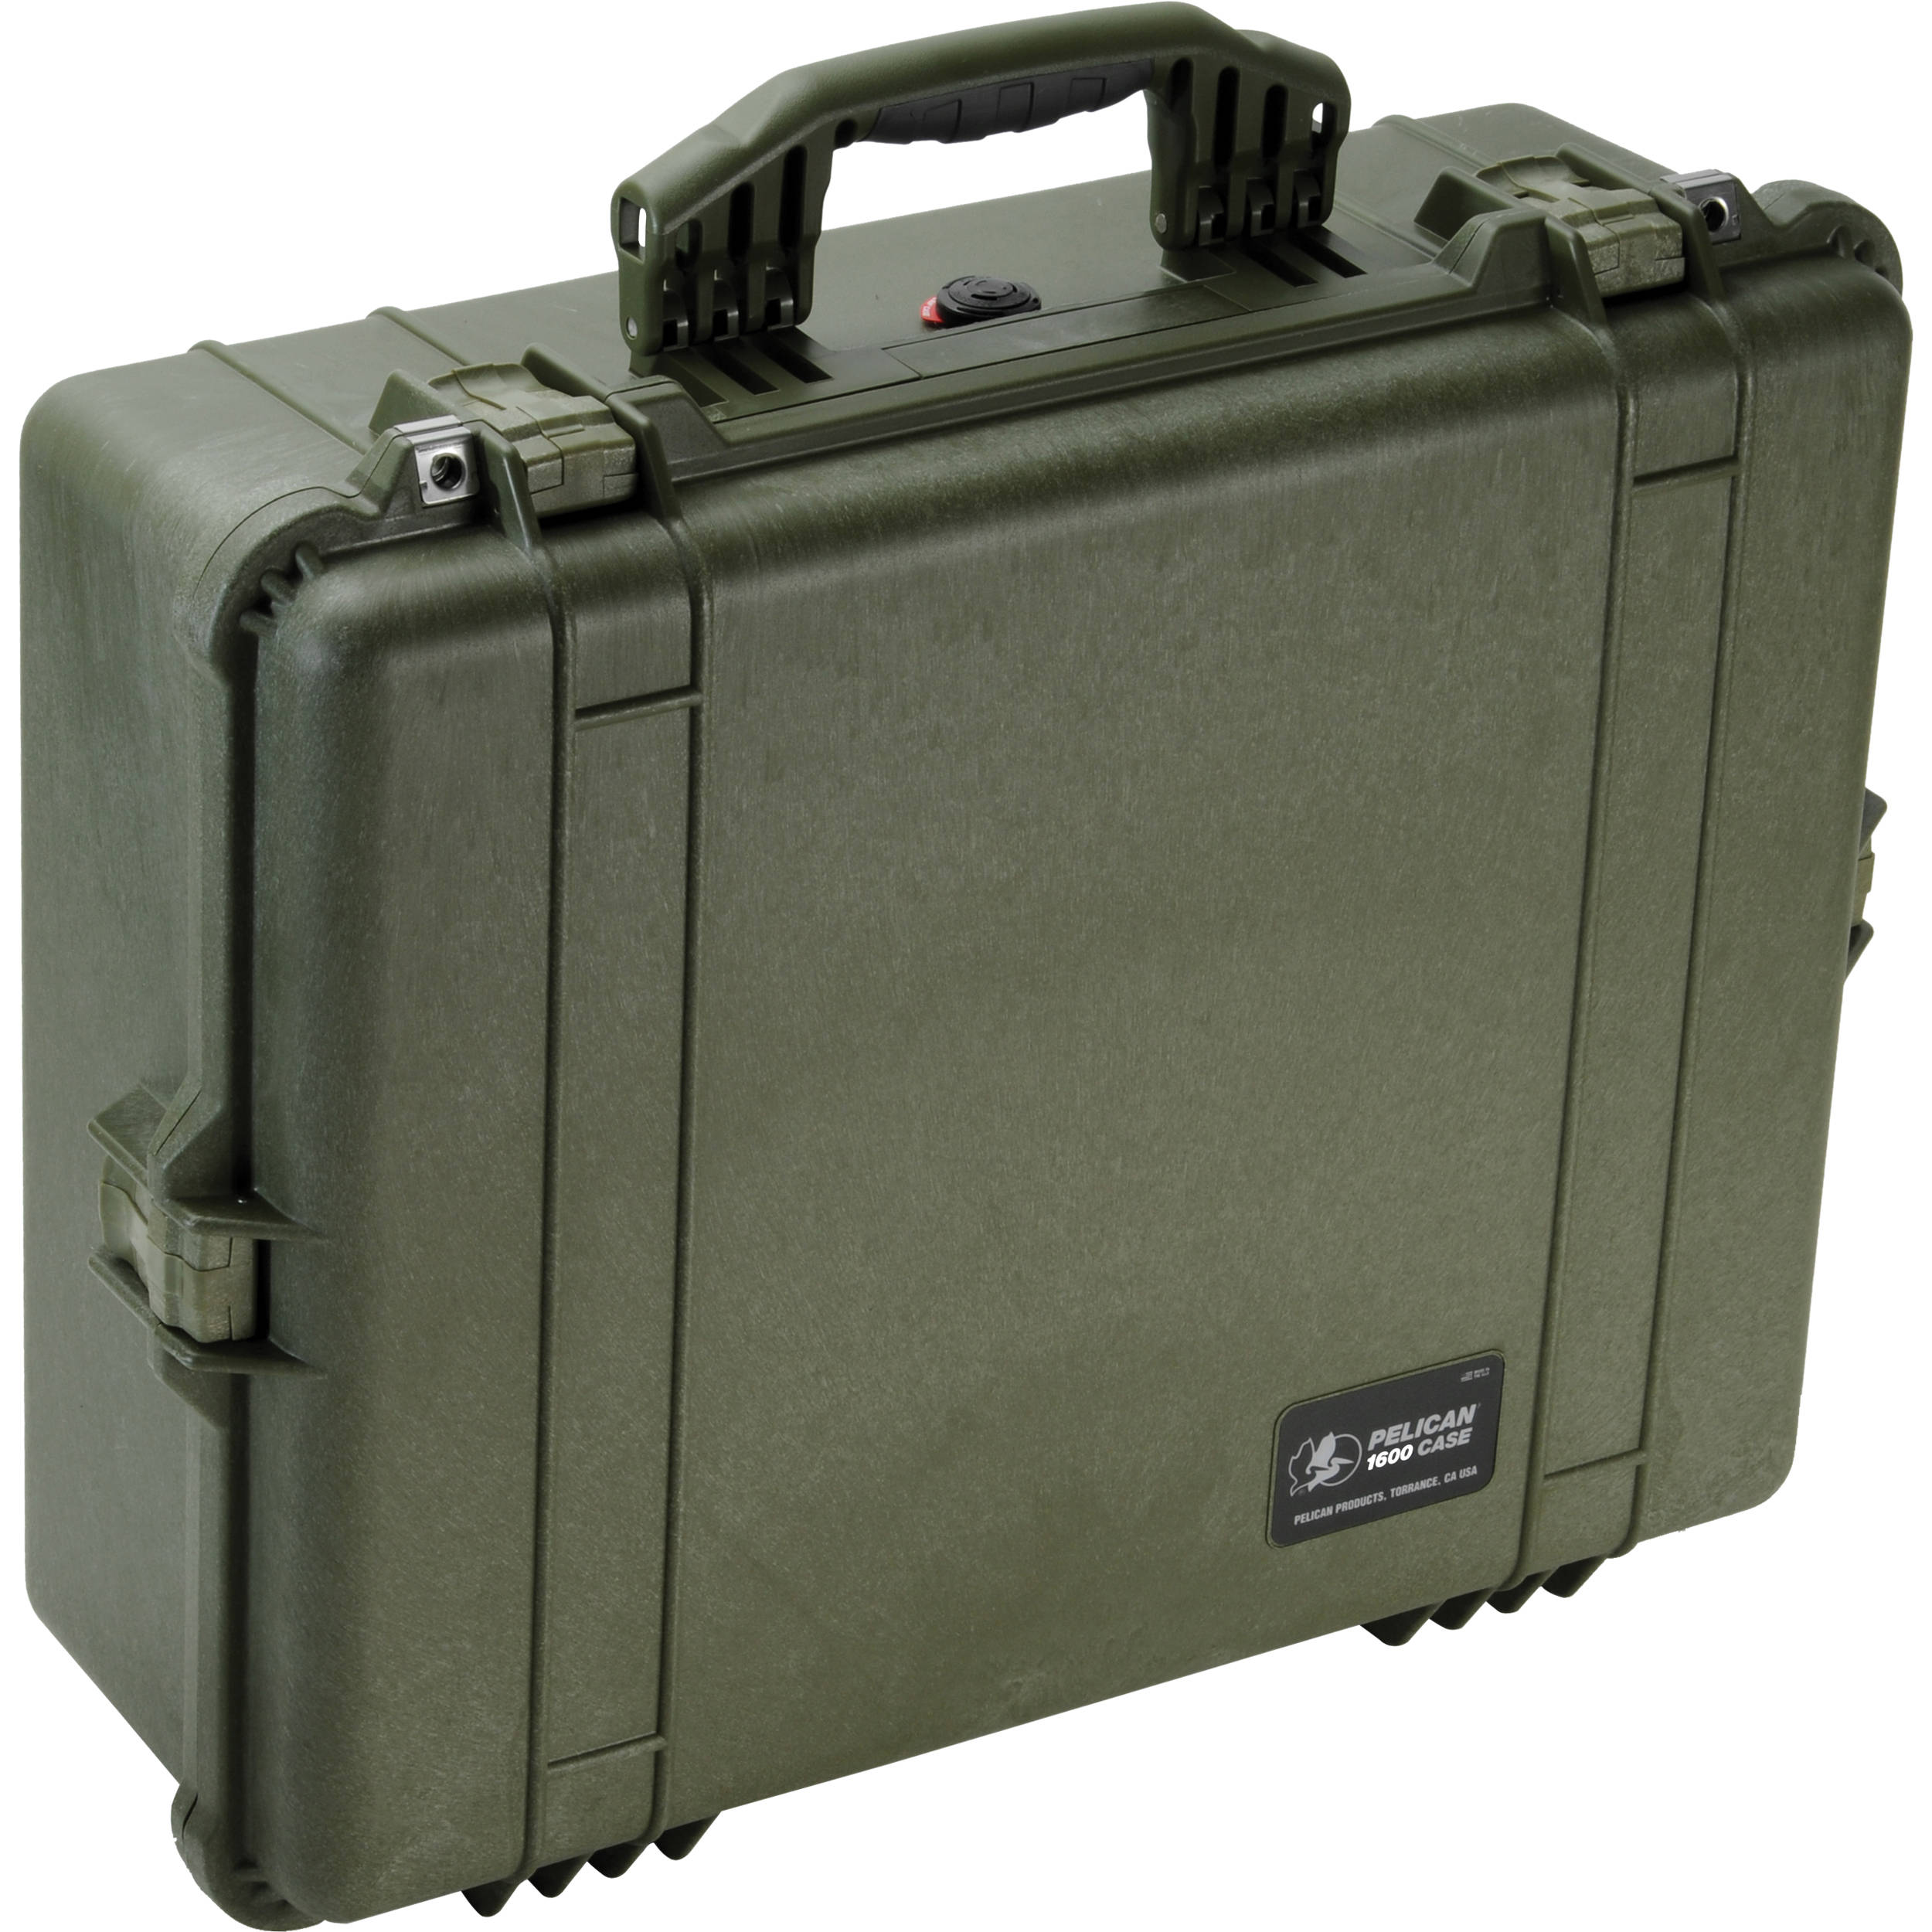 Pelican 1600 Case without Foam (Olive Drab Green) 1600-001-130